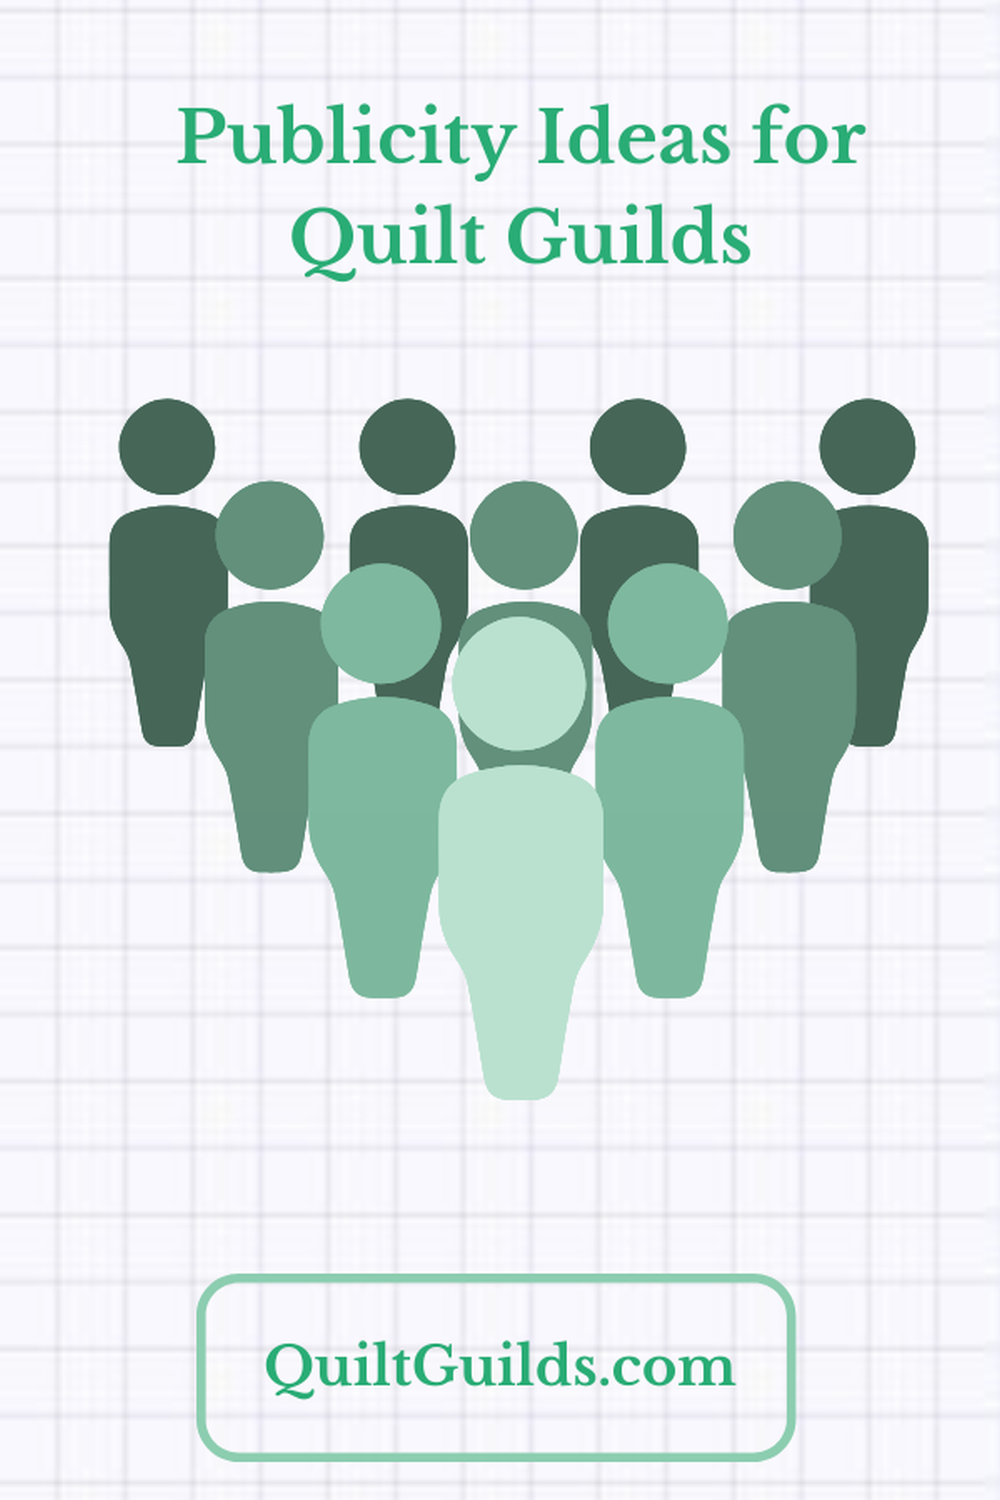 Publicity Ideas for Quilt Guilds and Quilting Groups Graphic